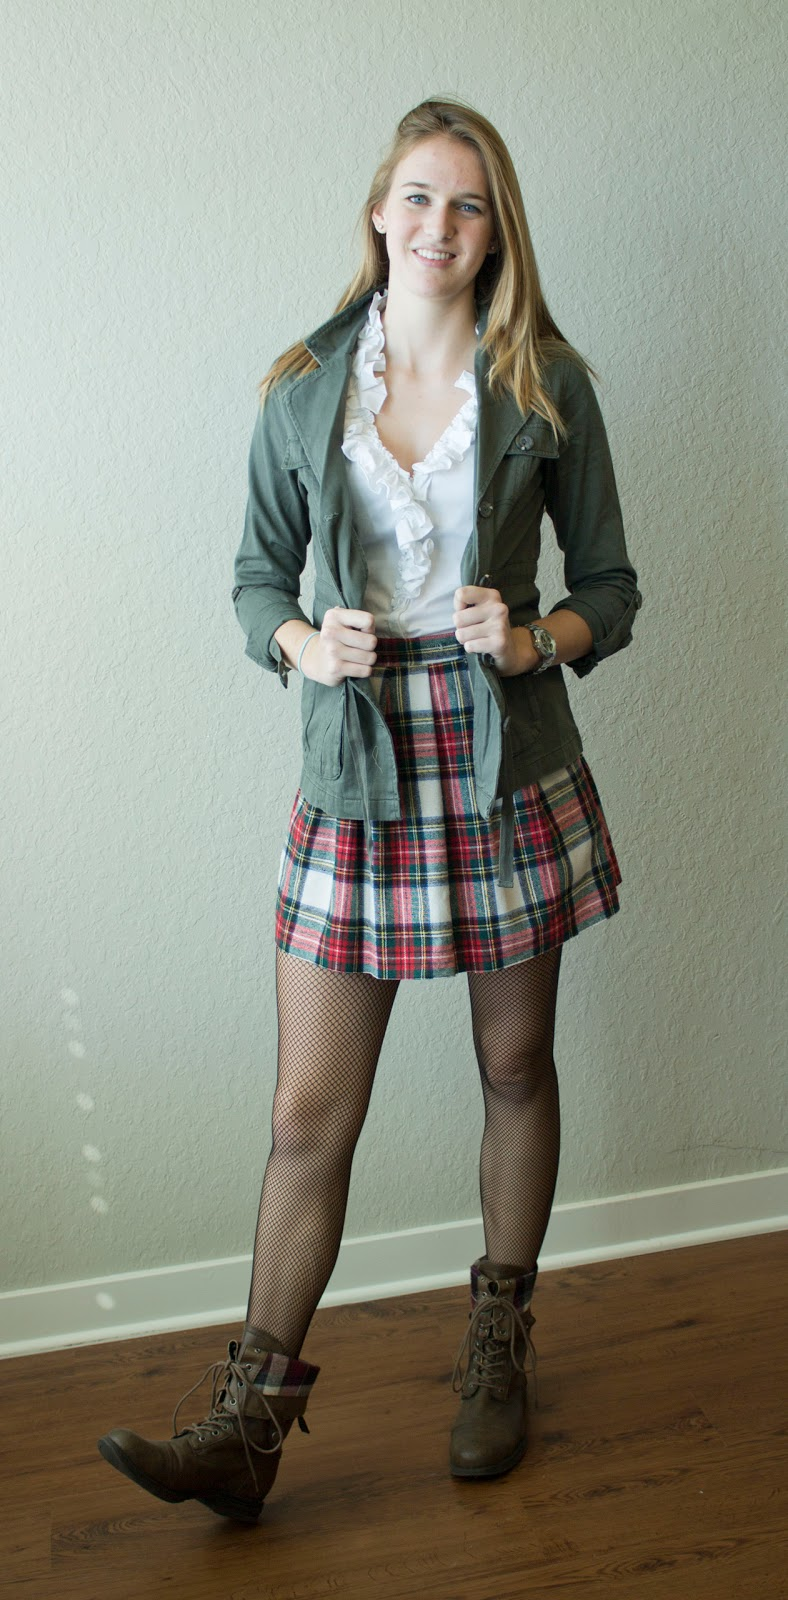 Diy Anime School Girl Costume